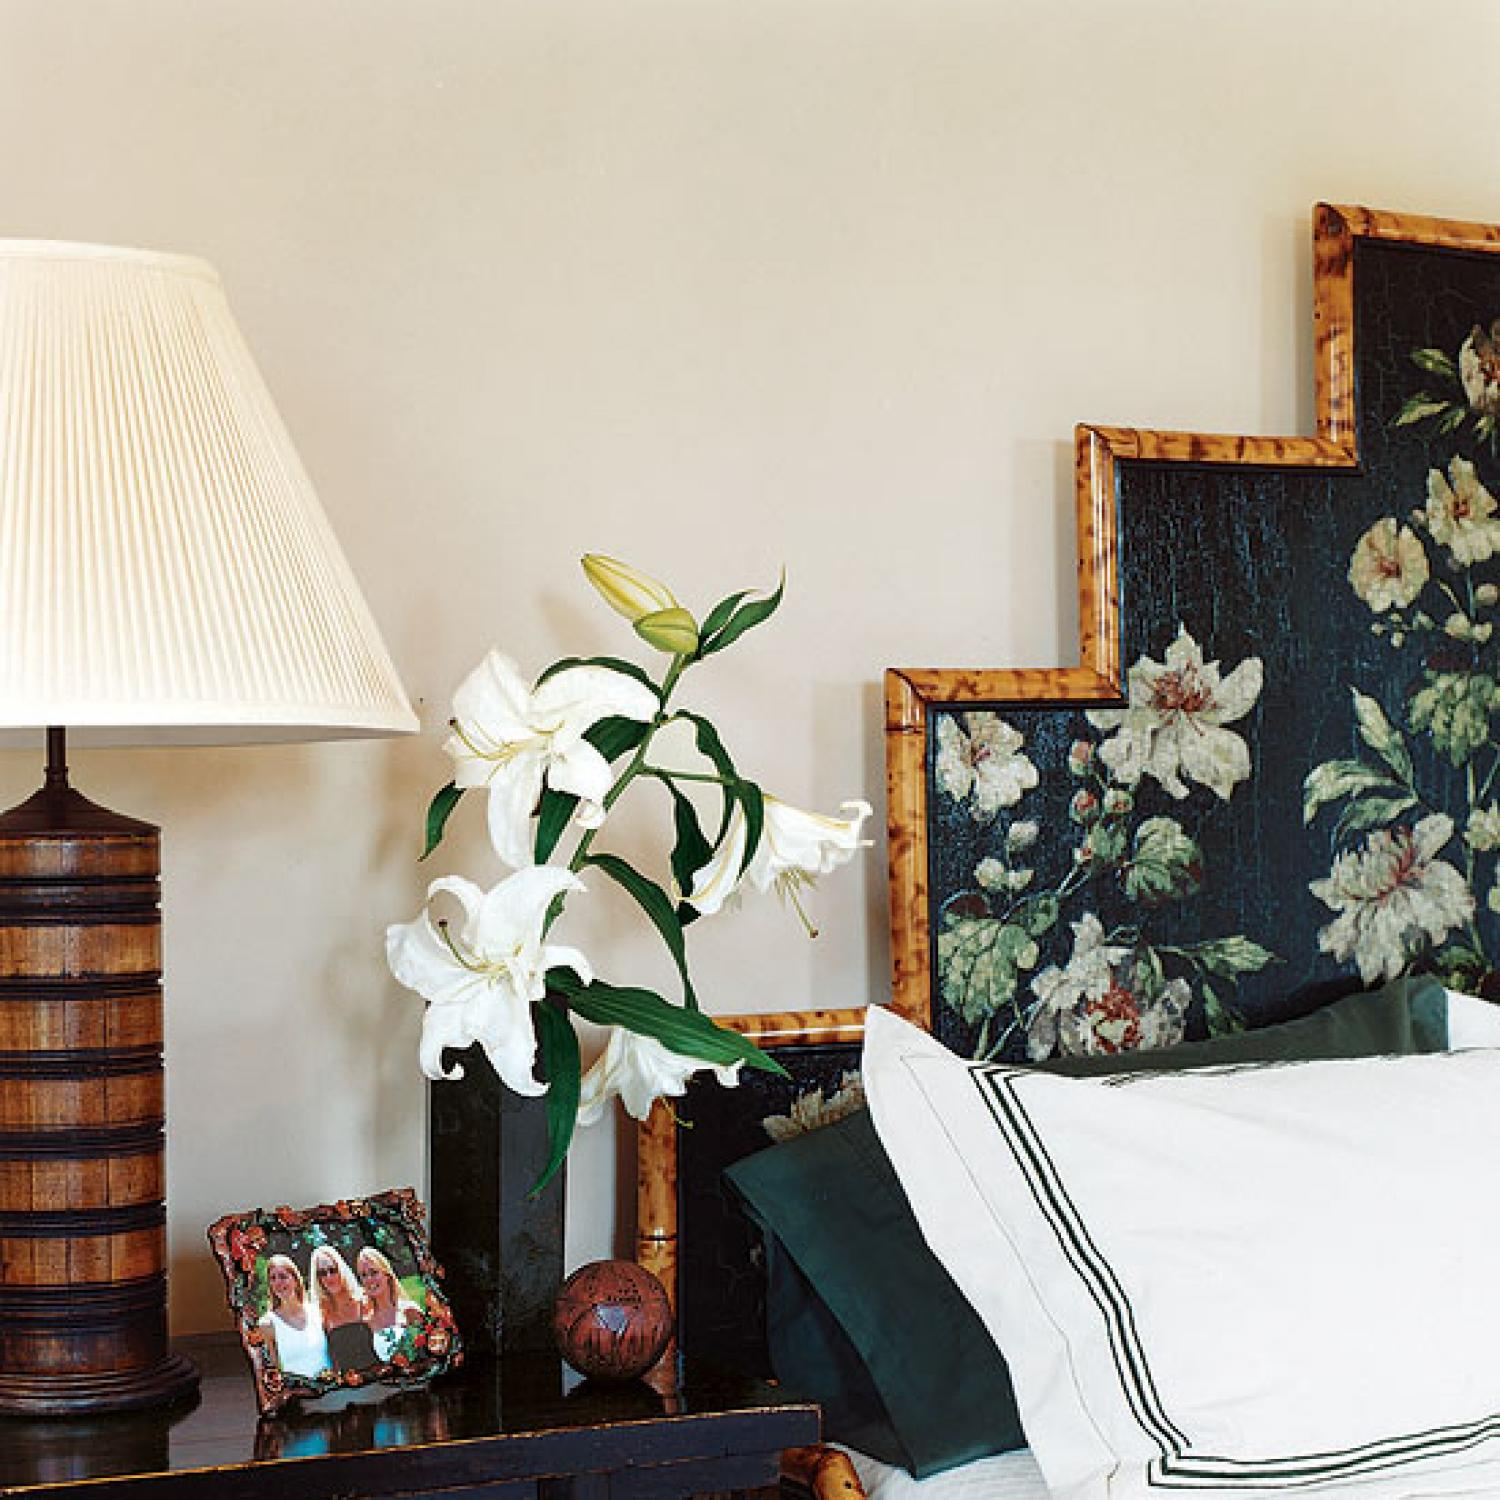 Bedrooms Ideas Decorate: Bedroom Decorating Ideas: From Arty To Exotic